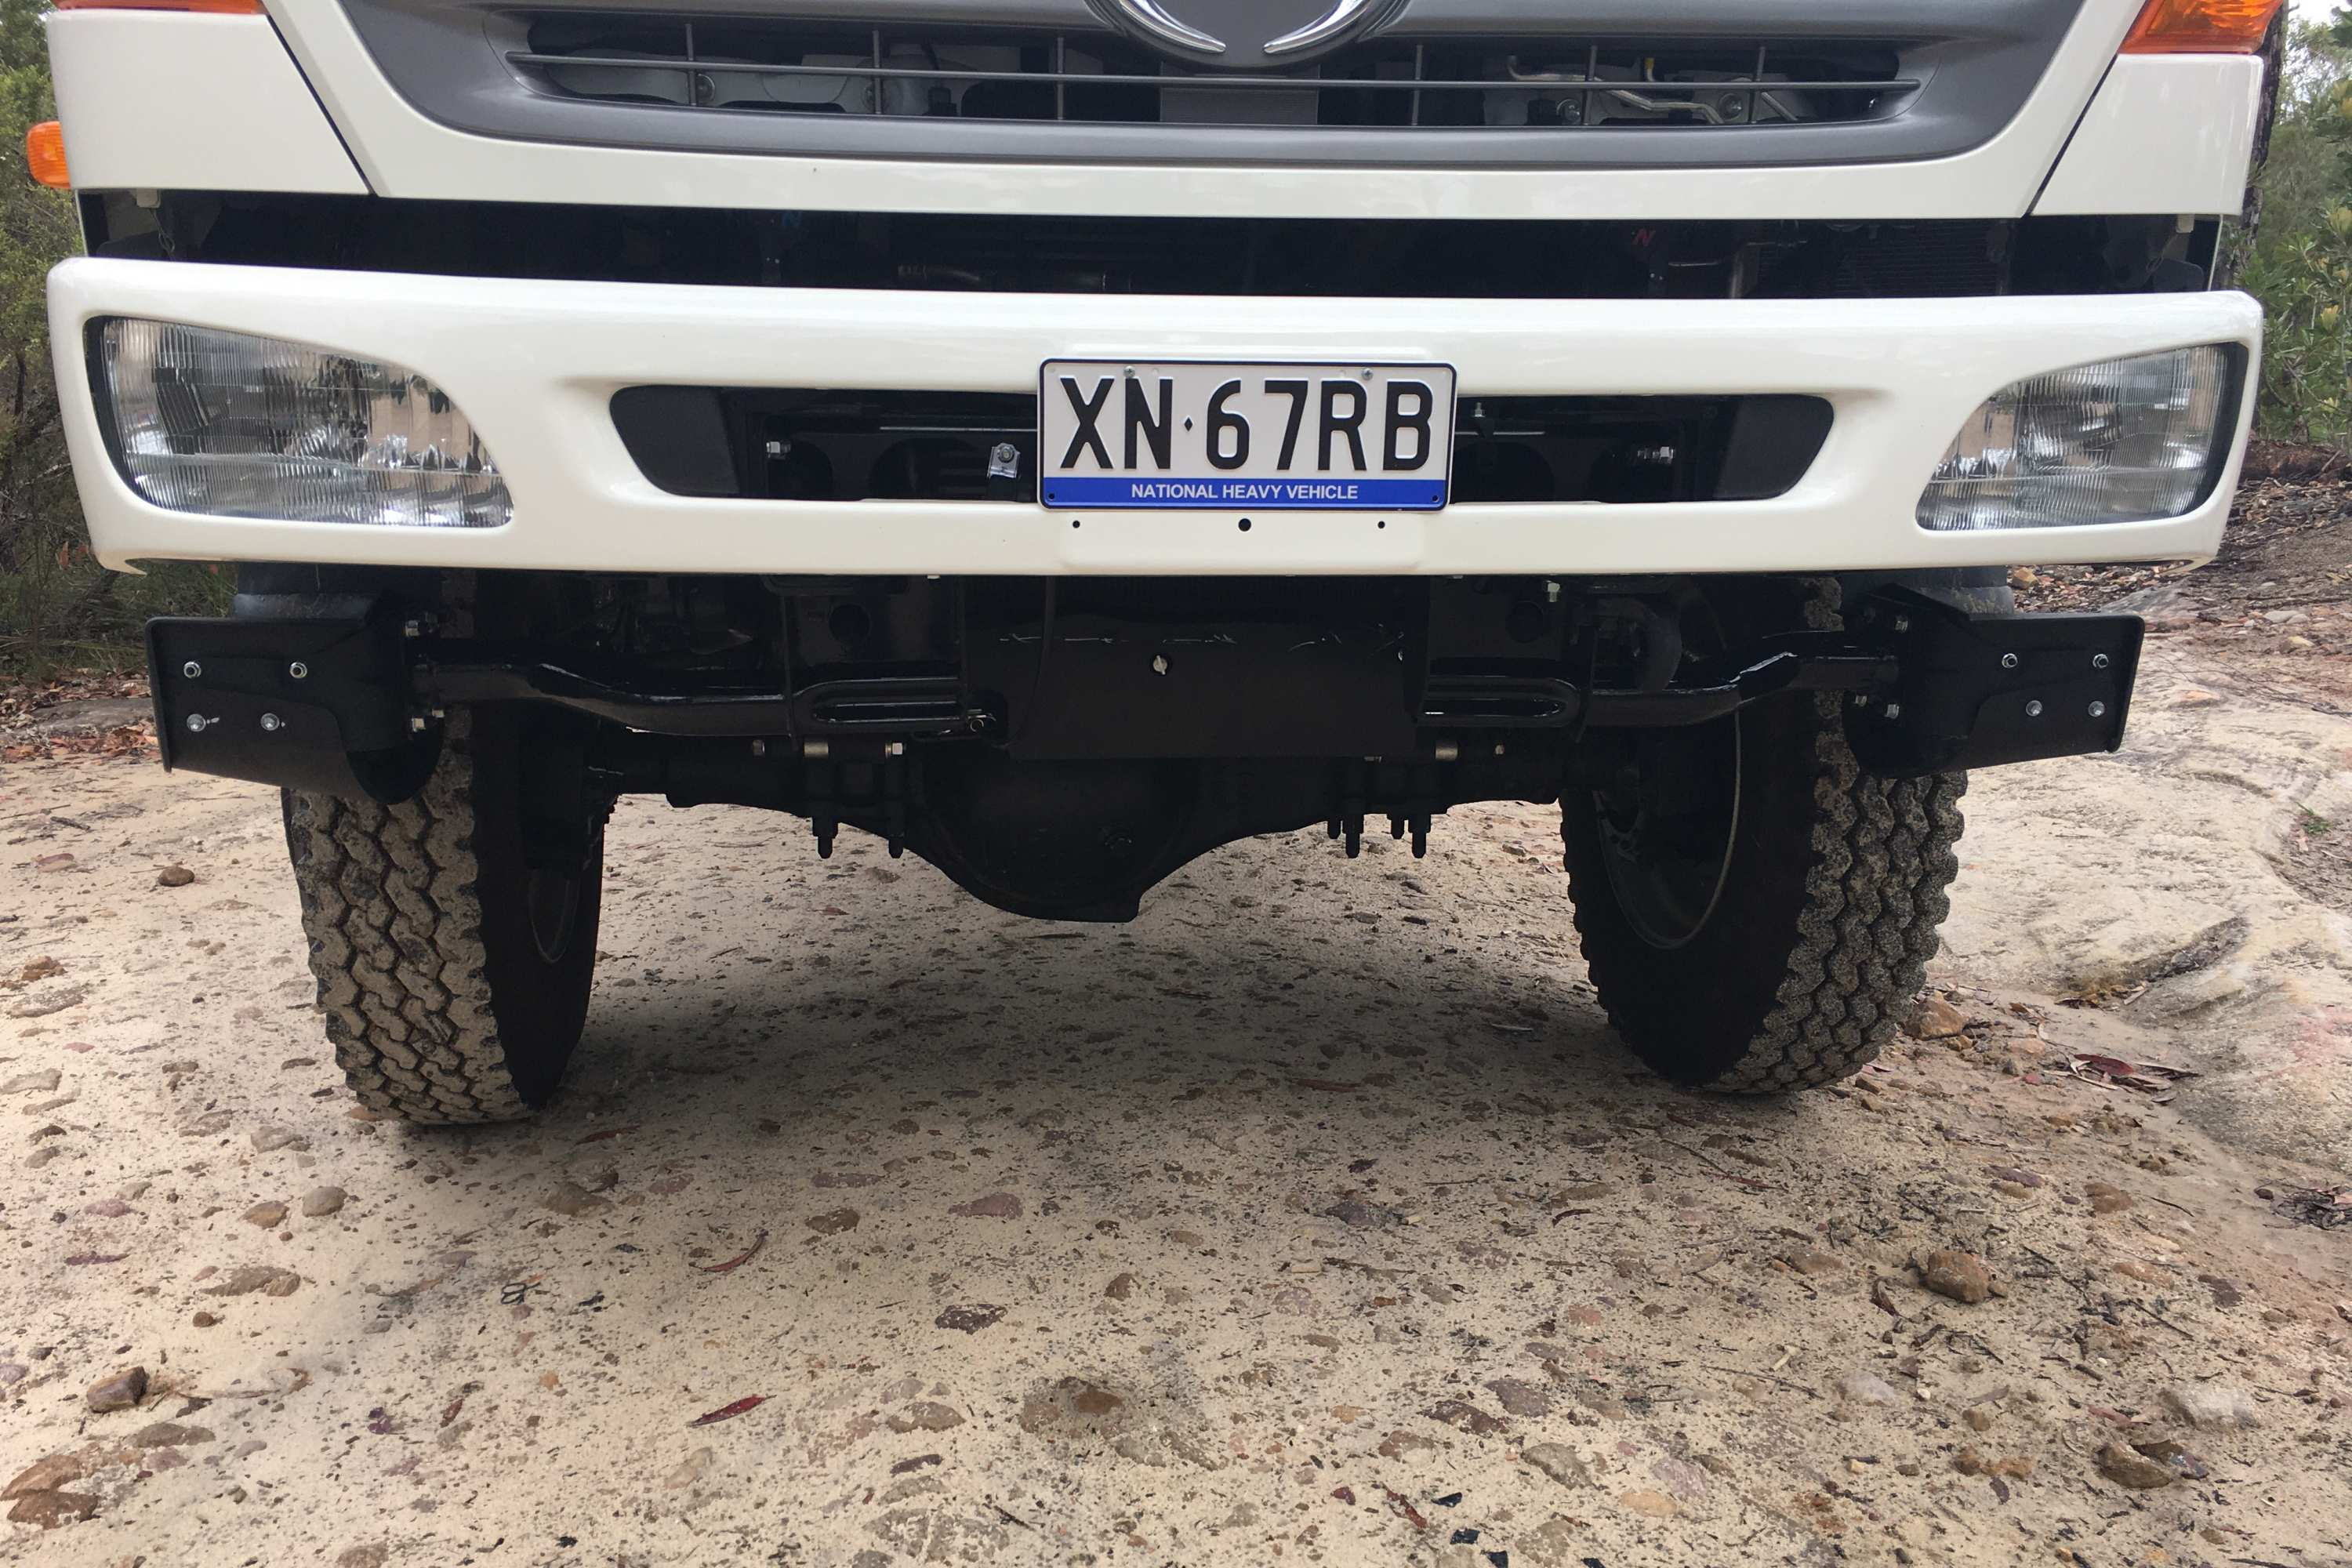 HINO 500 Series 1528 4X4 GT front